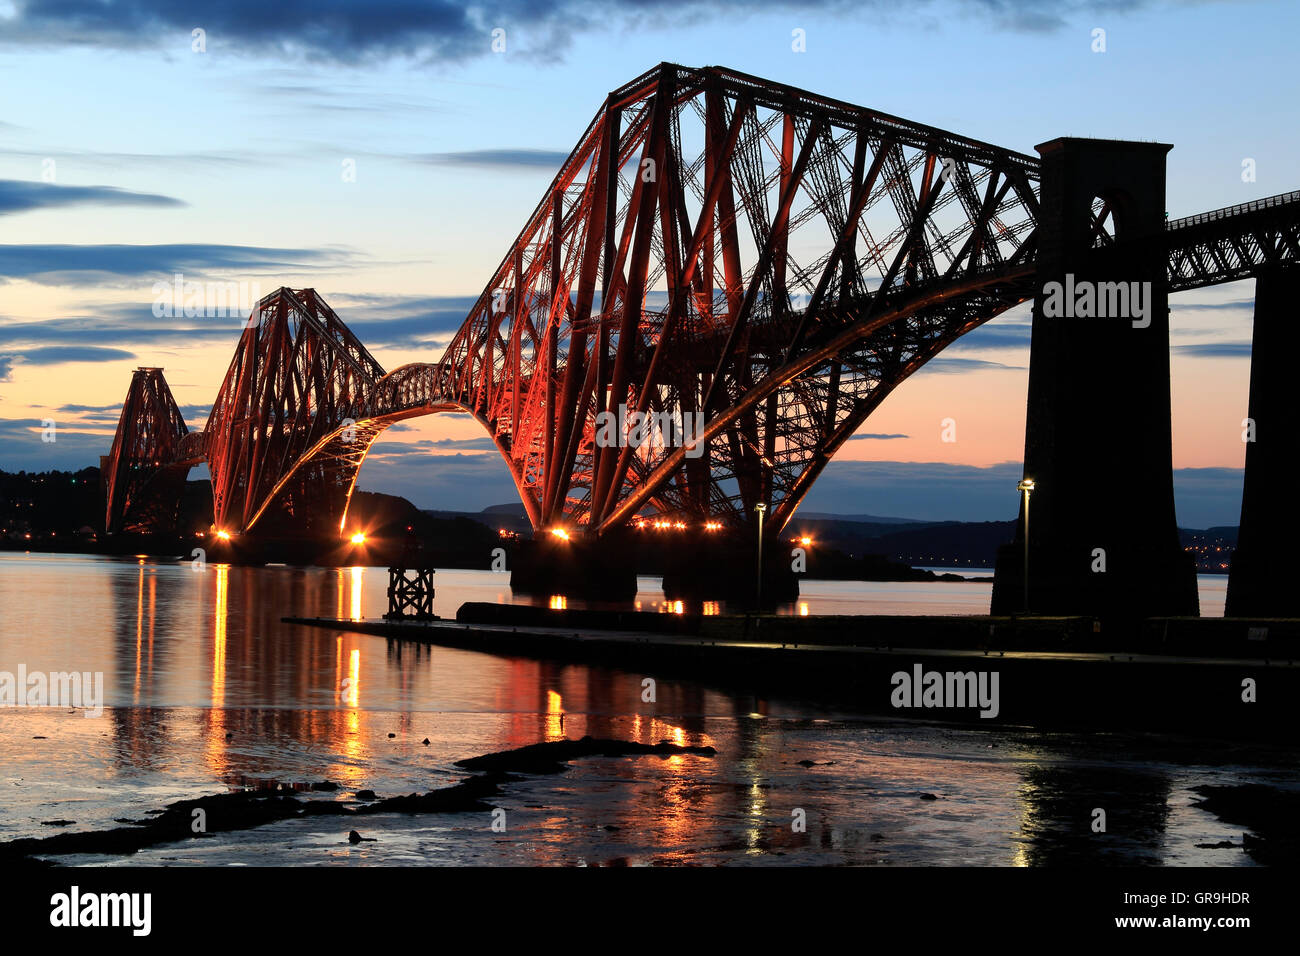 The Forth Bridge illuminated at night, South Queensferry, Lothian, Scotland, UK - Stock Image